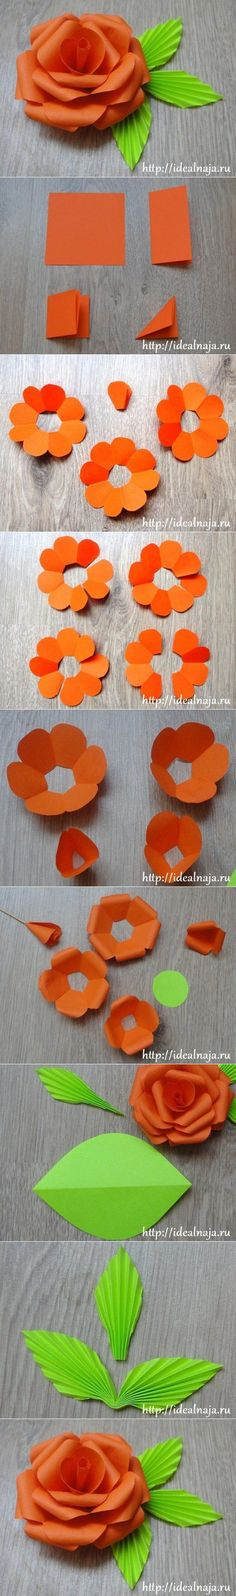 DIY Easy Paper Rose DIY Projects | UsefulDIY.com Follow us on Facebook ==> https://www.facebook.com/UsefulDiy